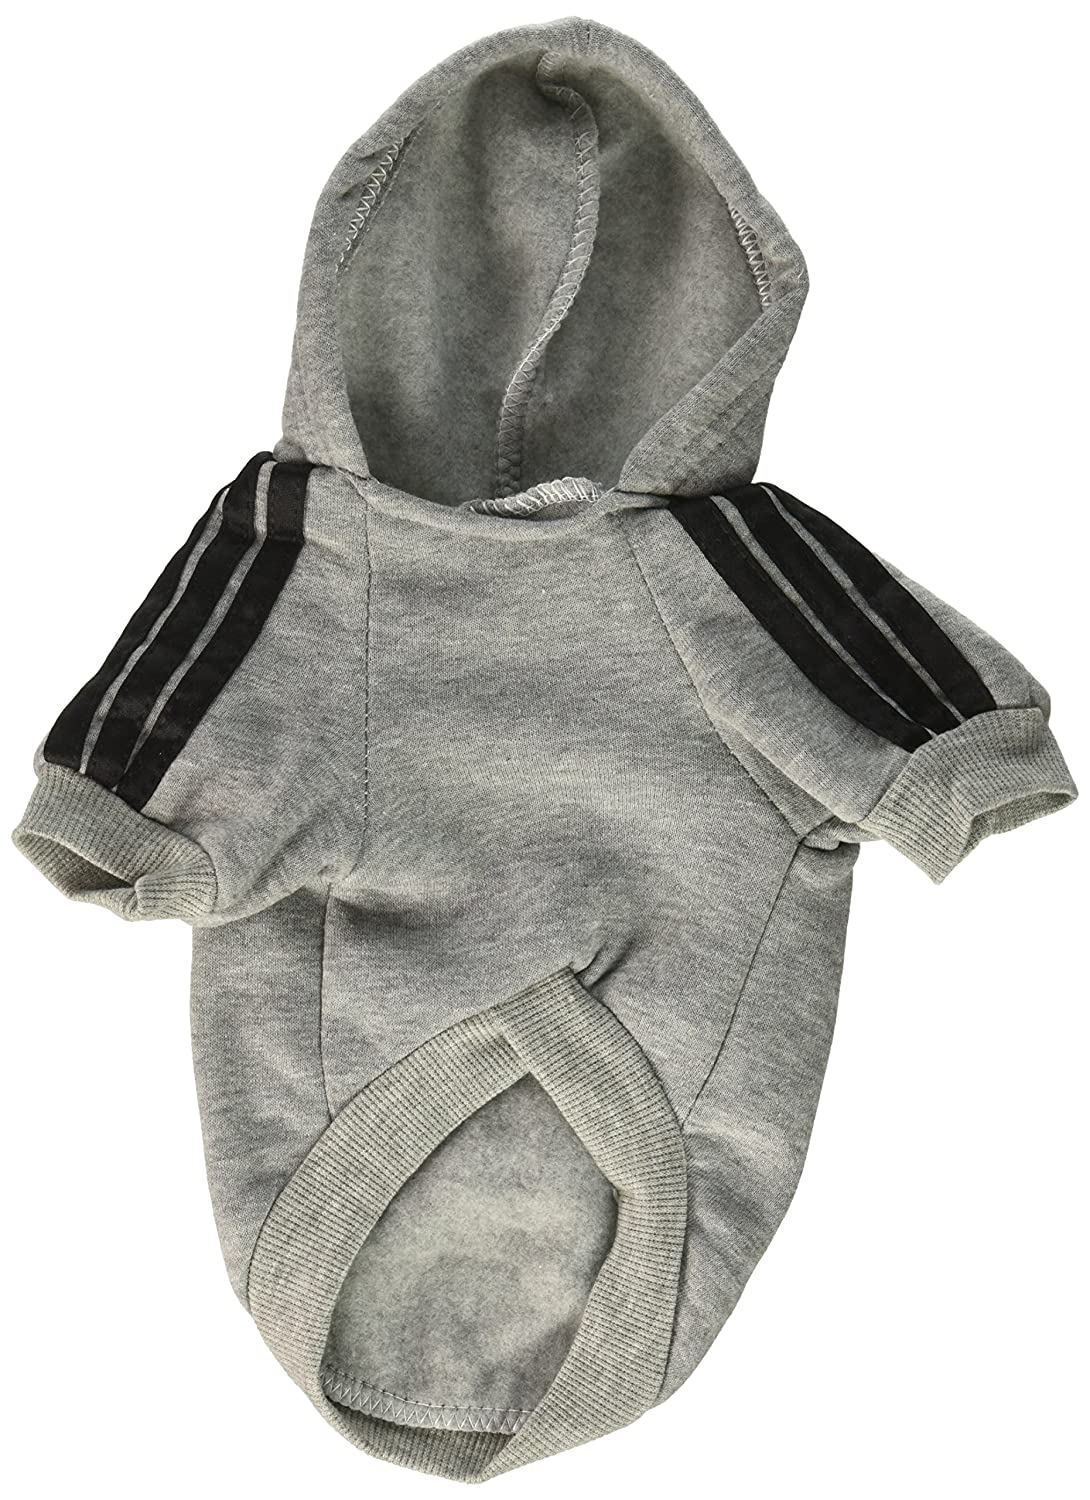 Amazon.com : Adidog Grey Dog Sweatshirt Hoodie Jacket - For the Best Fashion Pets (M) : Pet Coats : Pet Supplies